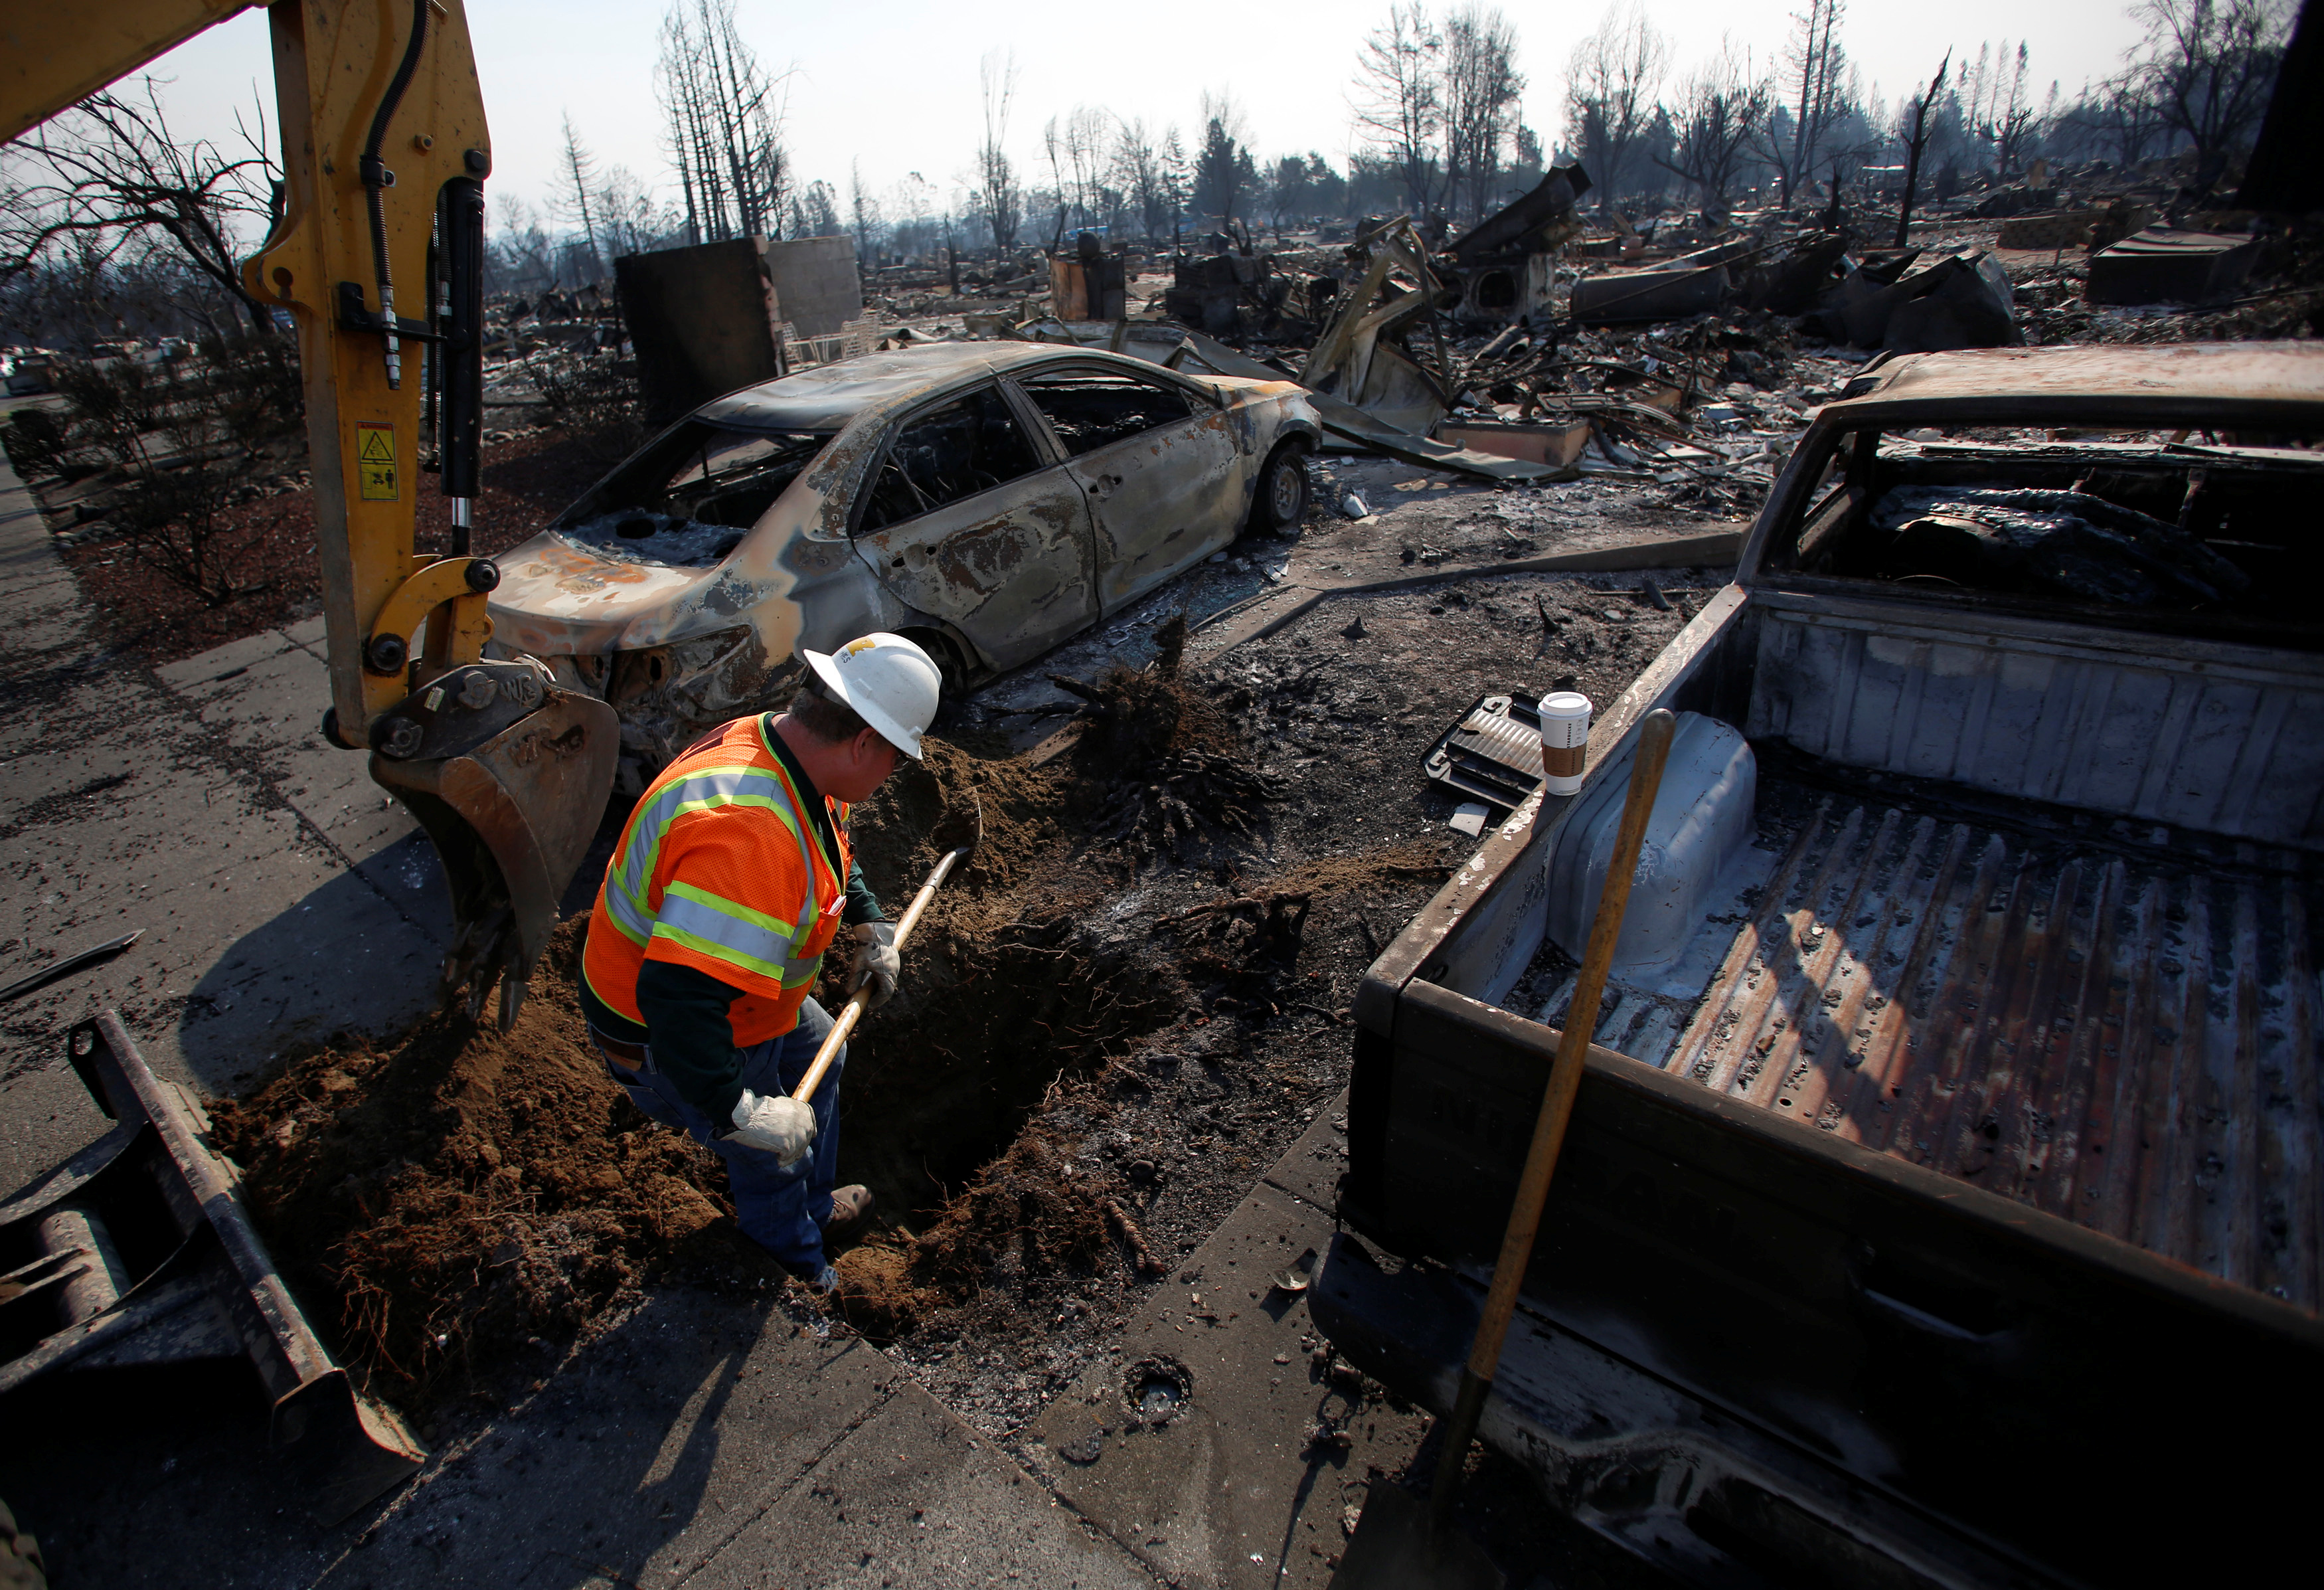 An employee of Pacific Gas & Electric (PG&E) digs to find an electrical transformer in a destroyed neighborhood after a wildfire tore through Santa Rosa, California